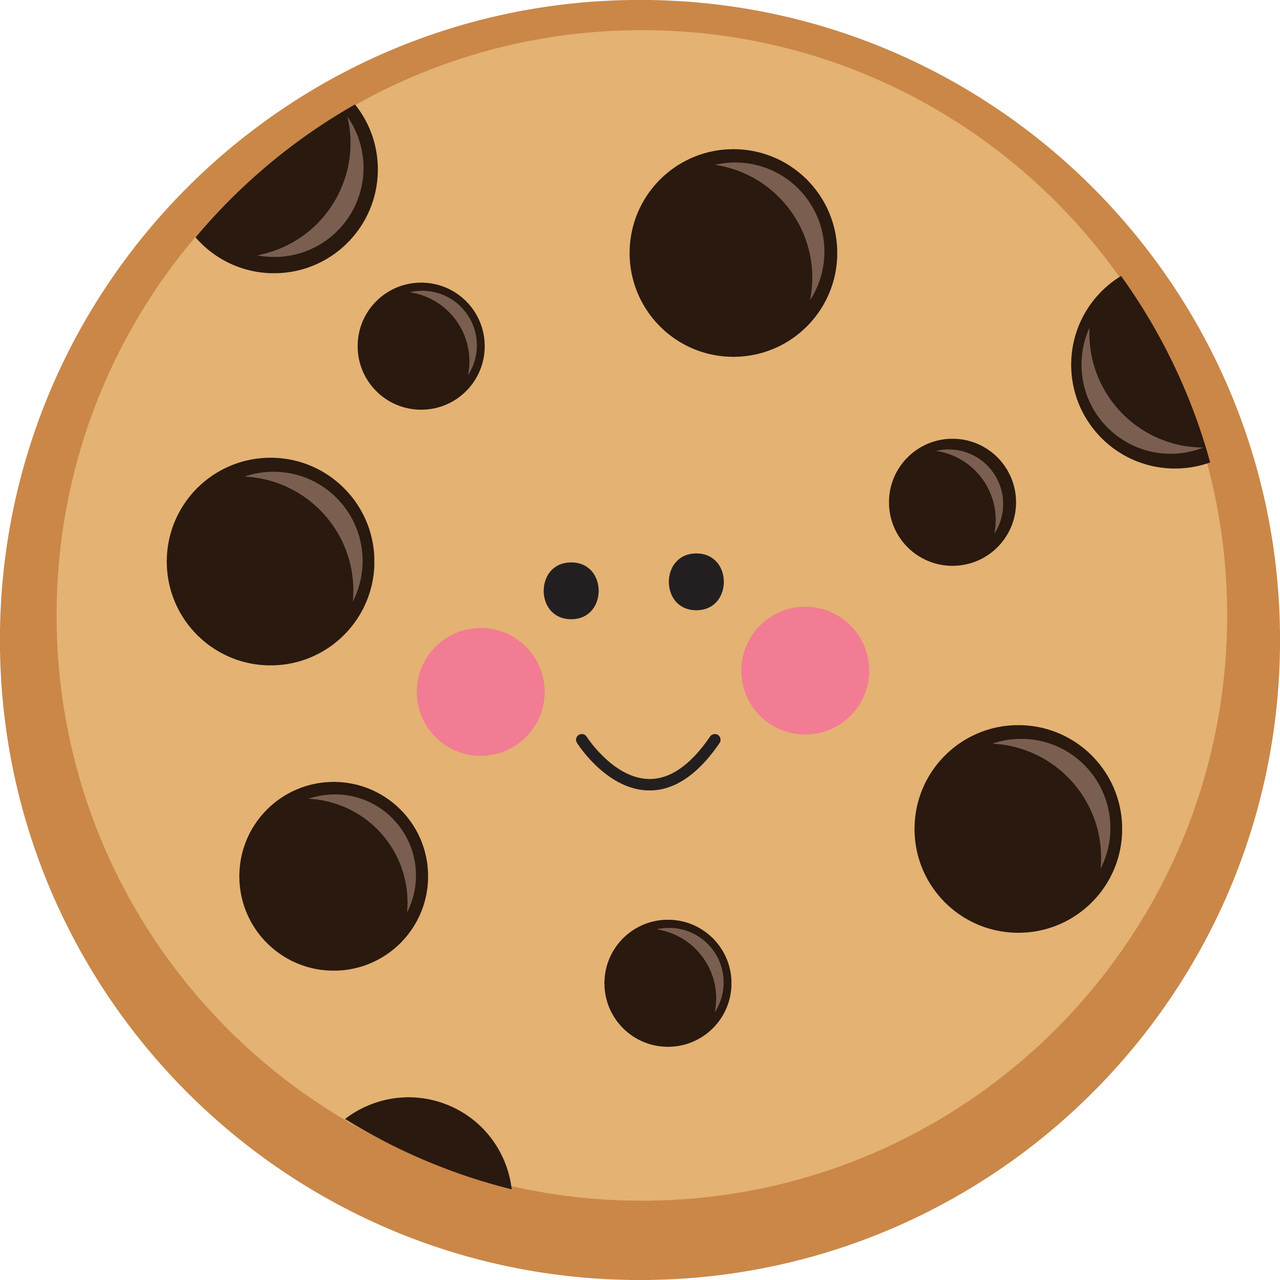 Free clipart jpg files. Cookies cliparts download clip